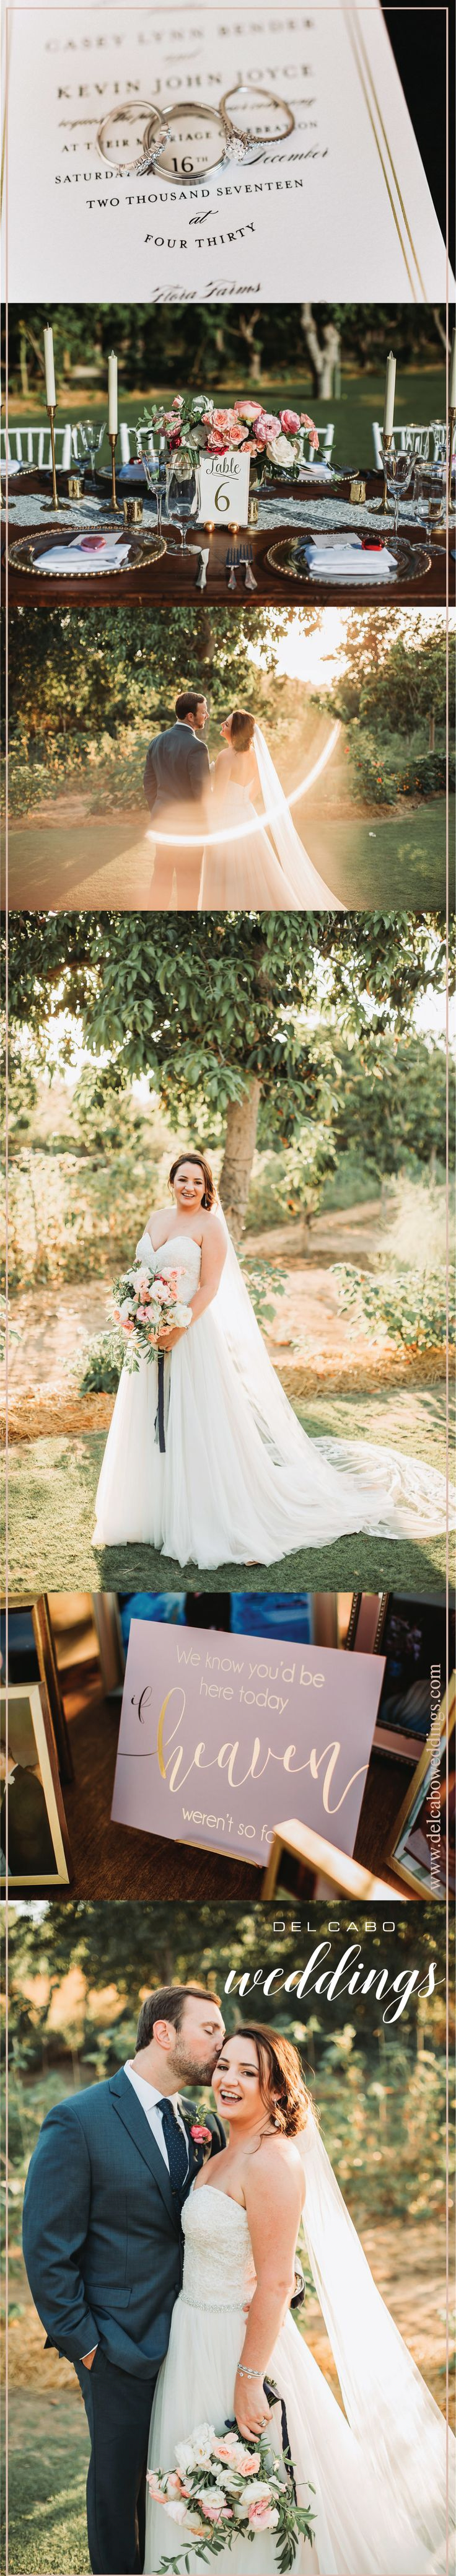 An amazing wedding at incredible Flora Farms! Casey and Kevin's wedding was magical and breathtaking! They had their dream destination wedding in Cabo come true!  Photos by: Ana and Jerome Photography Venue: Flora Farms Florals: Lola del Campo HMU: Suzanne Morel